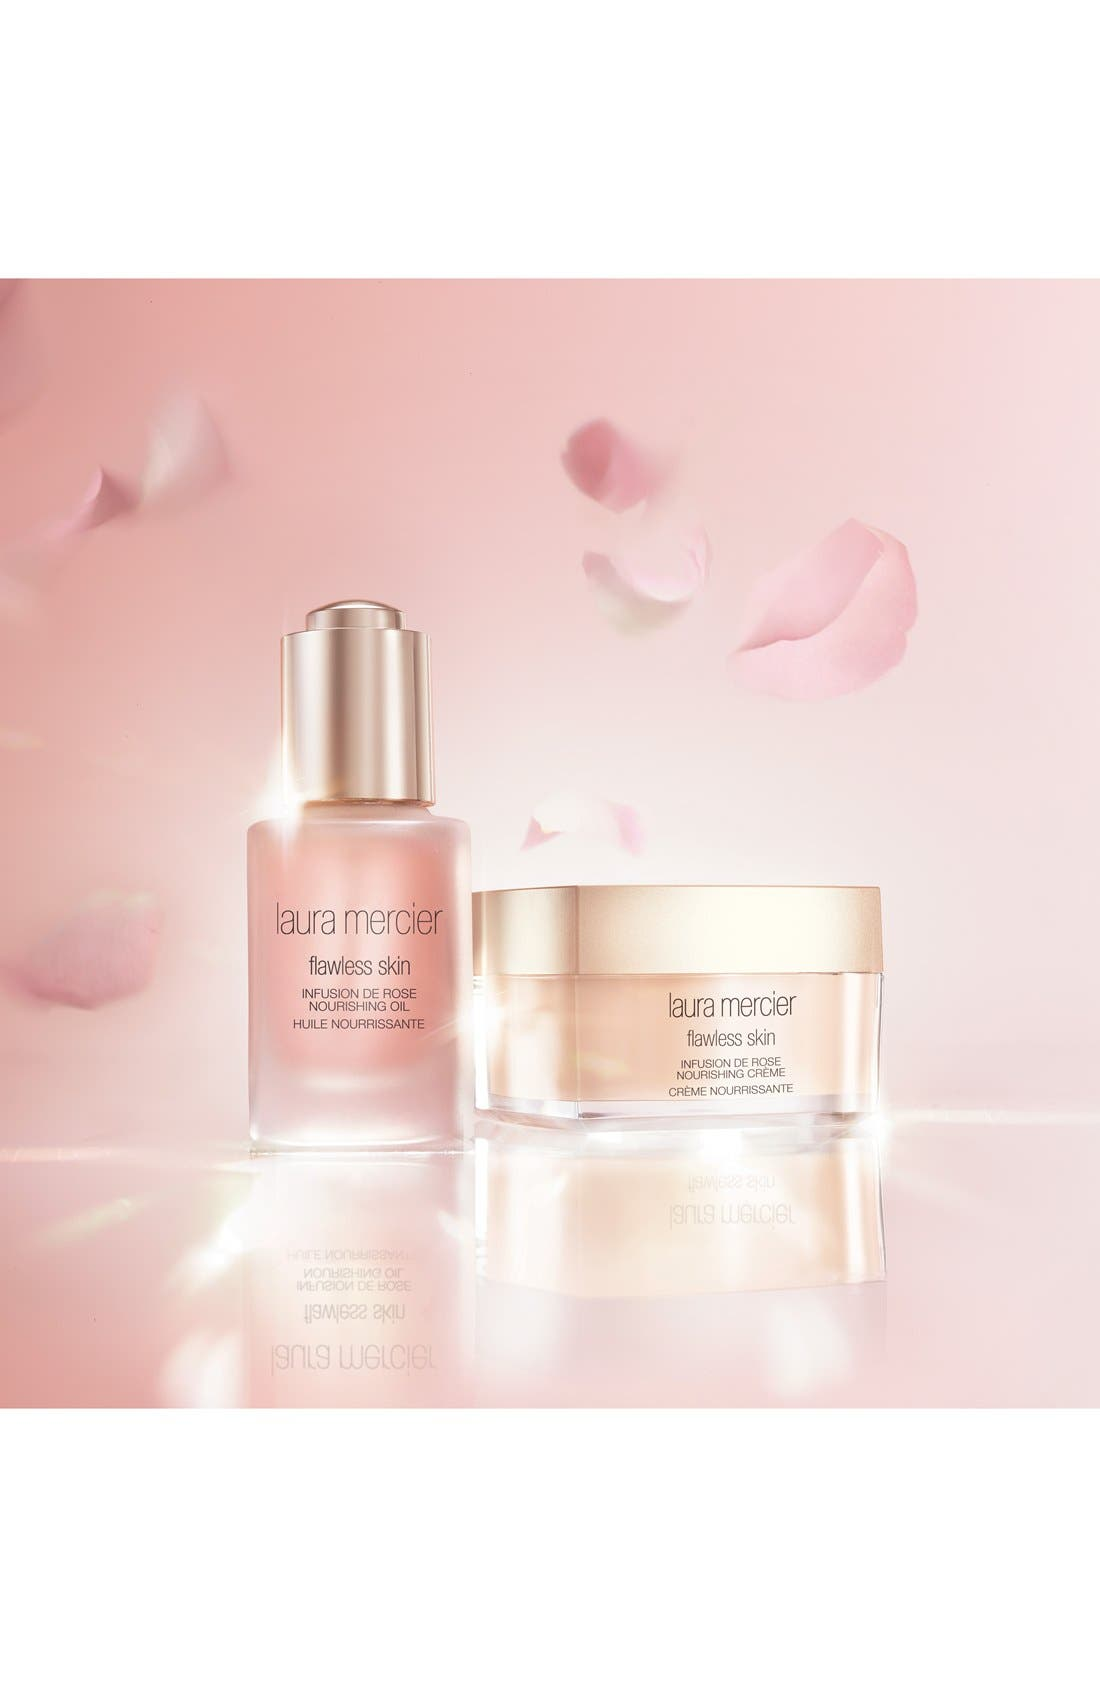 'Flawless Skin' Infusion de Rose Nourishing Oil,                             Alternate thumbnail 2, color,                             NO COLOR